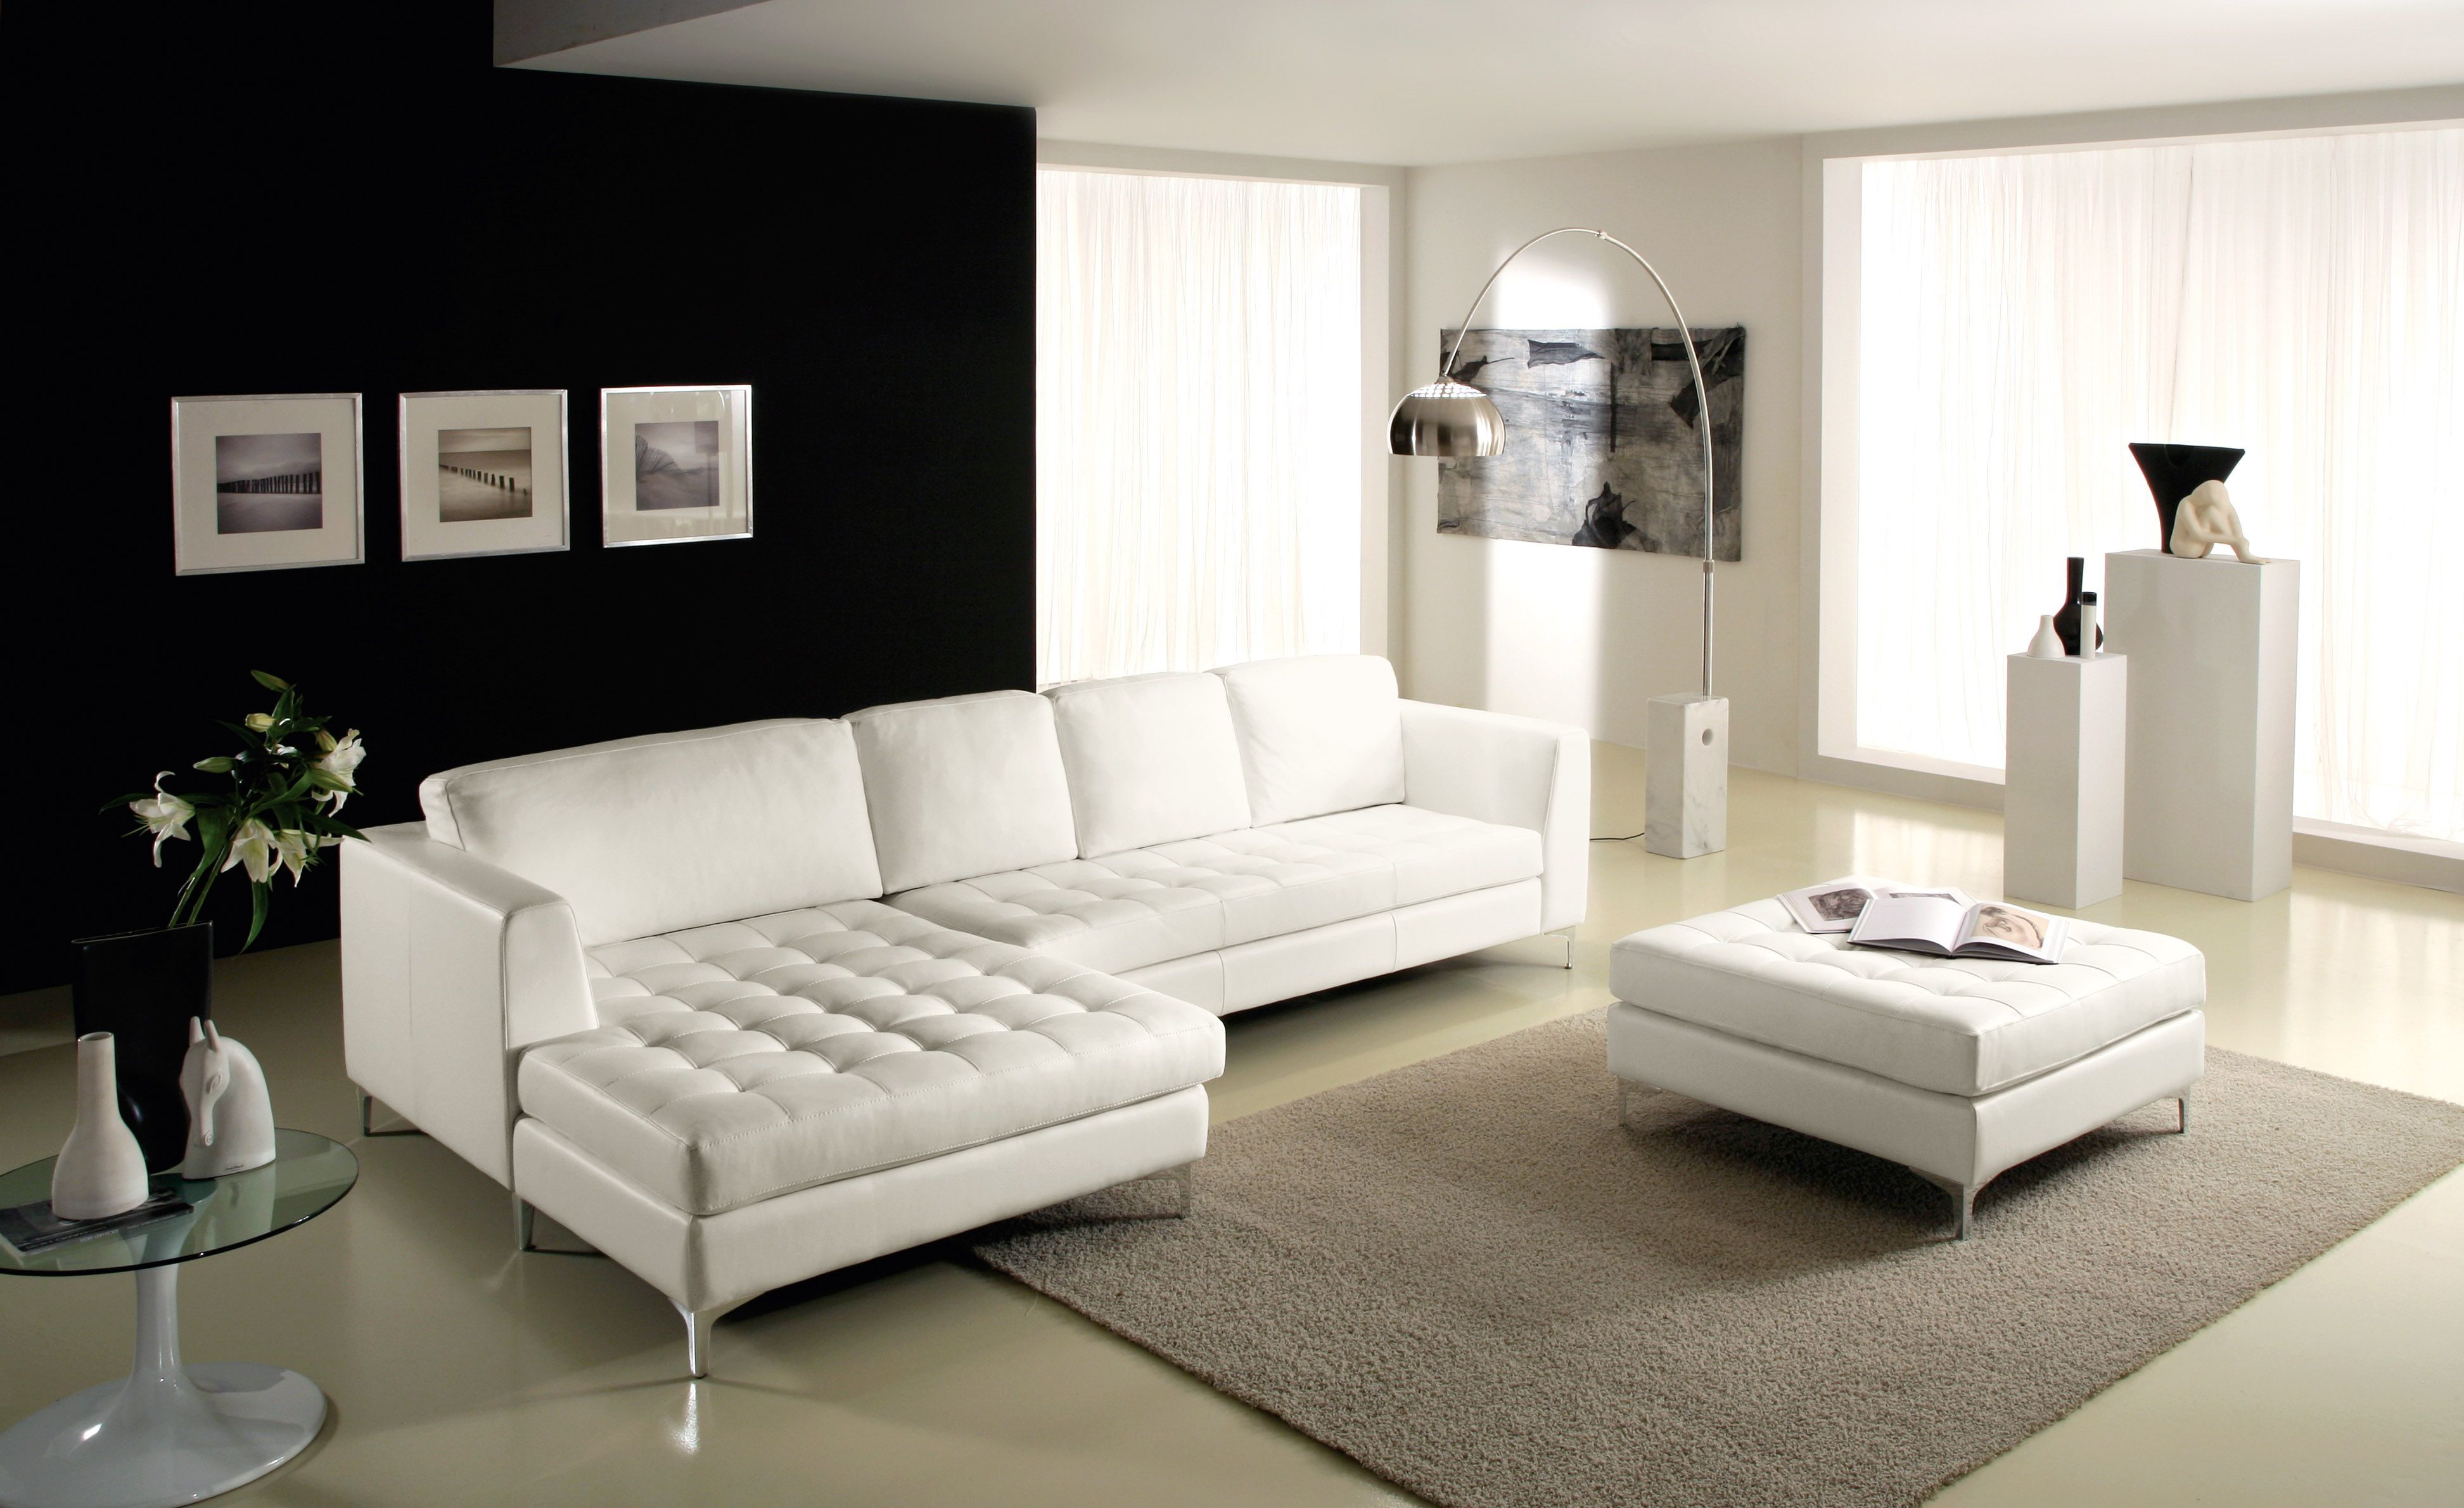 Fabio And Co Is Proud To Offer You 100 Genuine Italian Sofas Over 200 Exclusive Models To Choose From Yo Modern Leather Furniture Furniture Leather Sofa